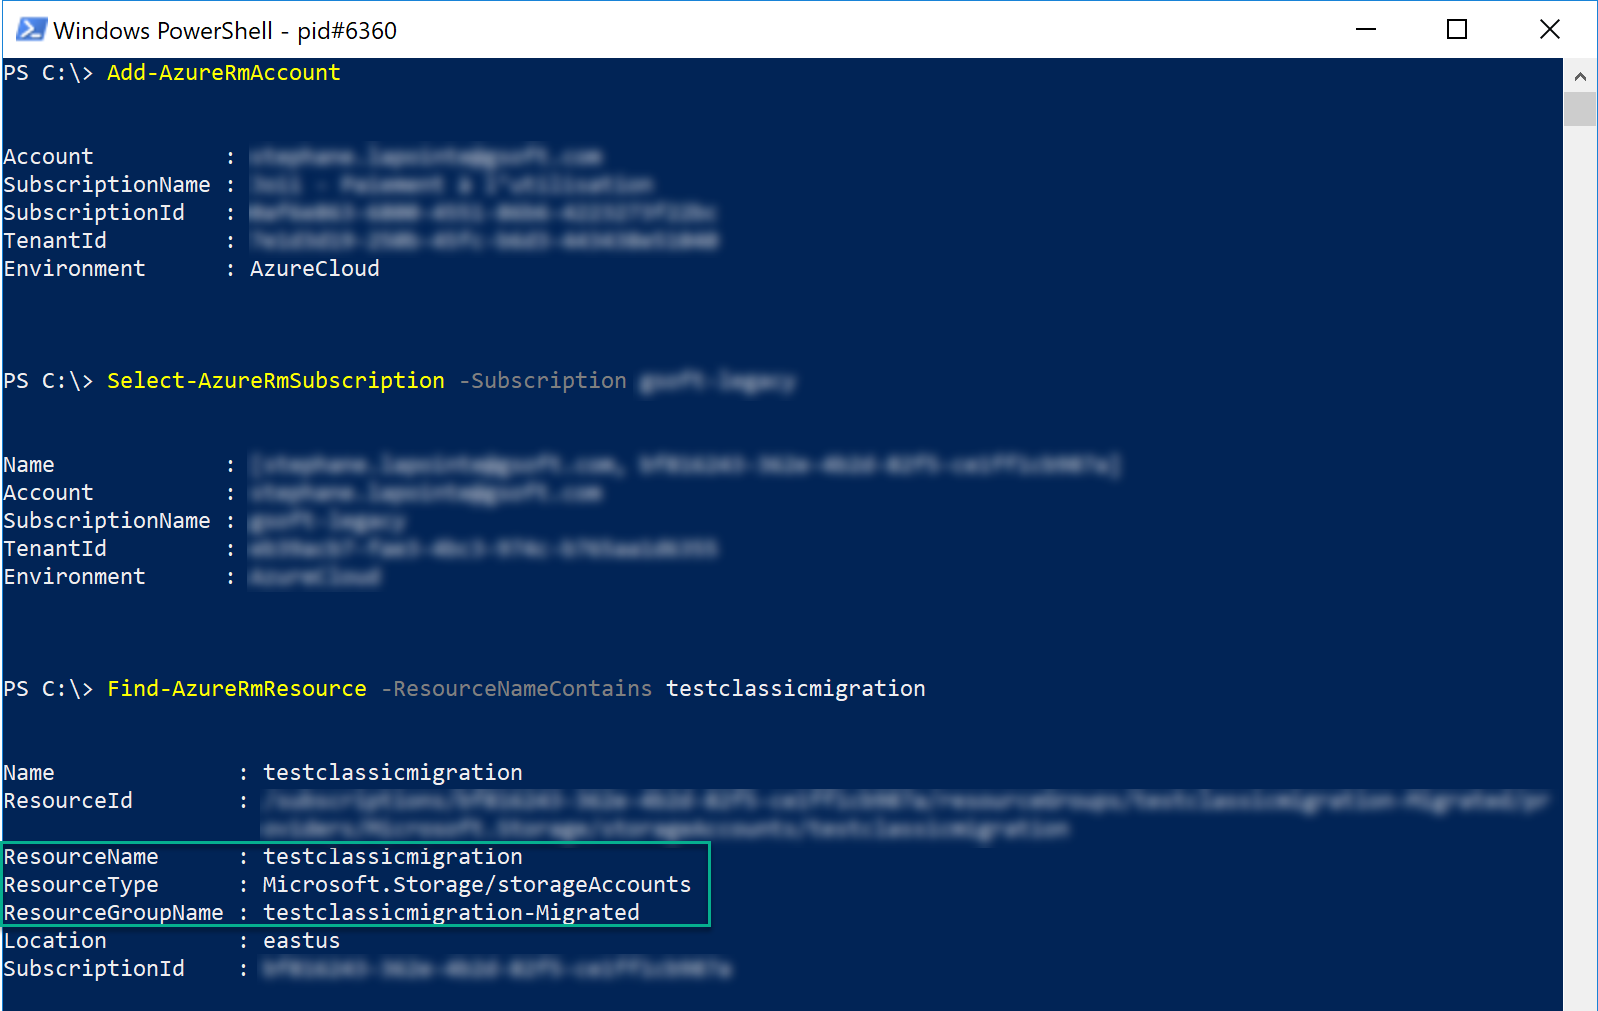 Find-AzureRmResource